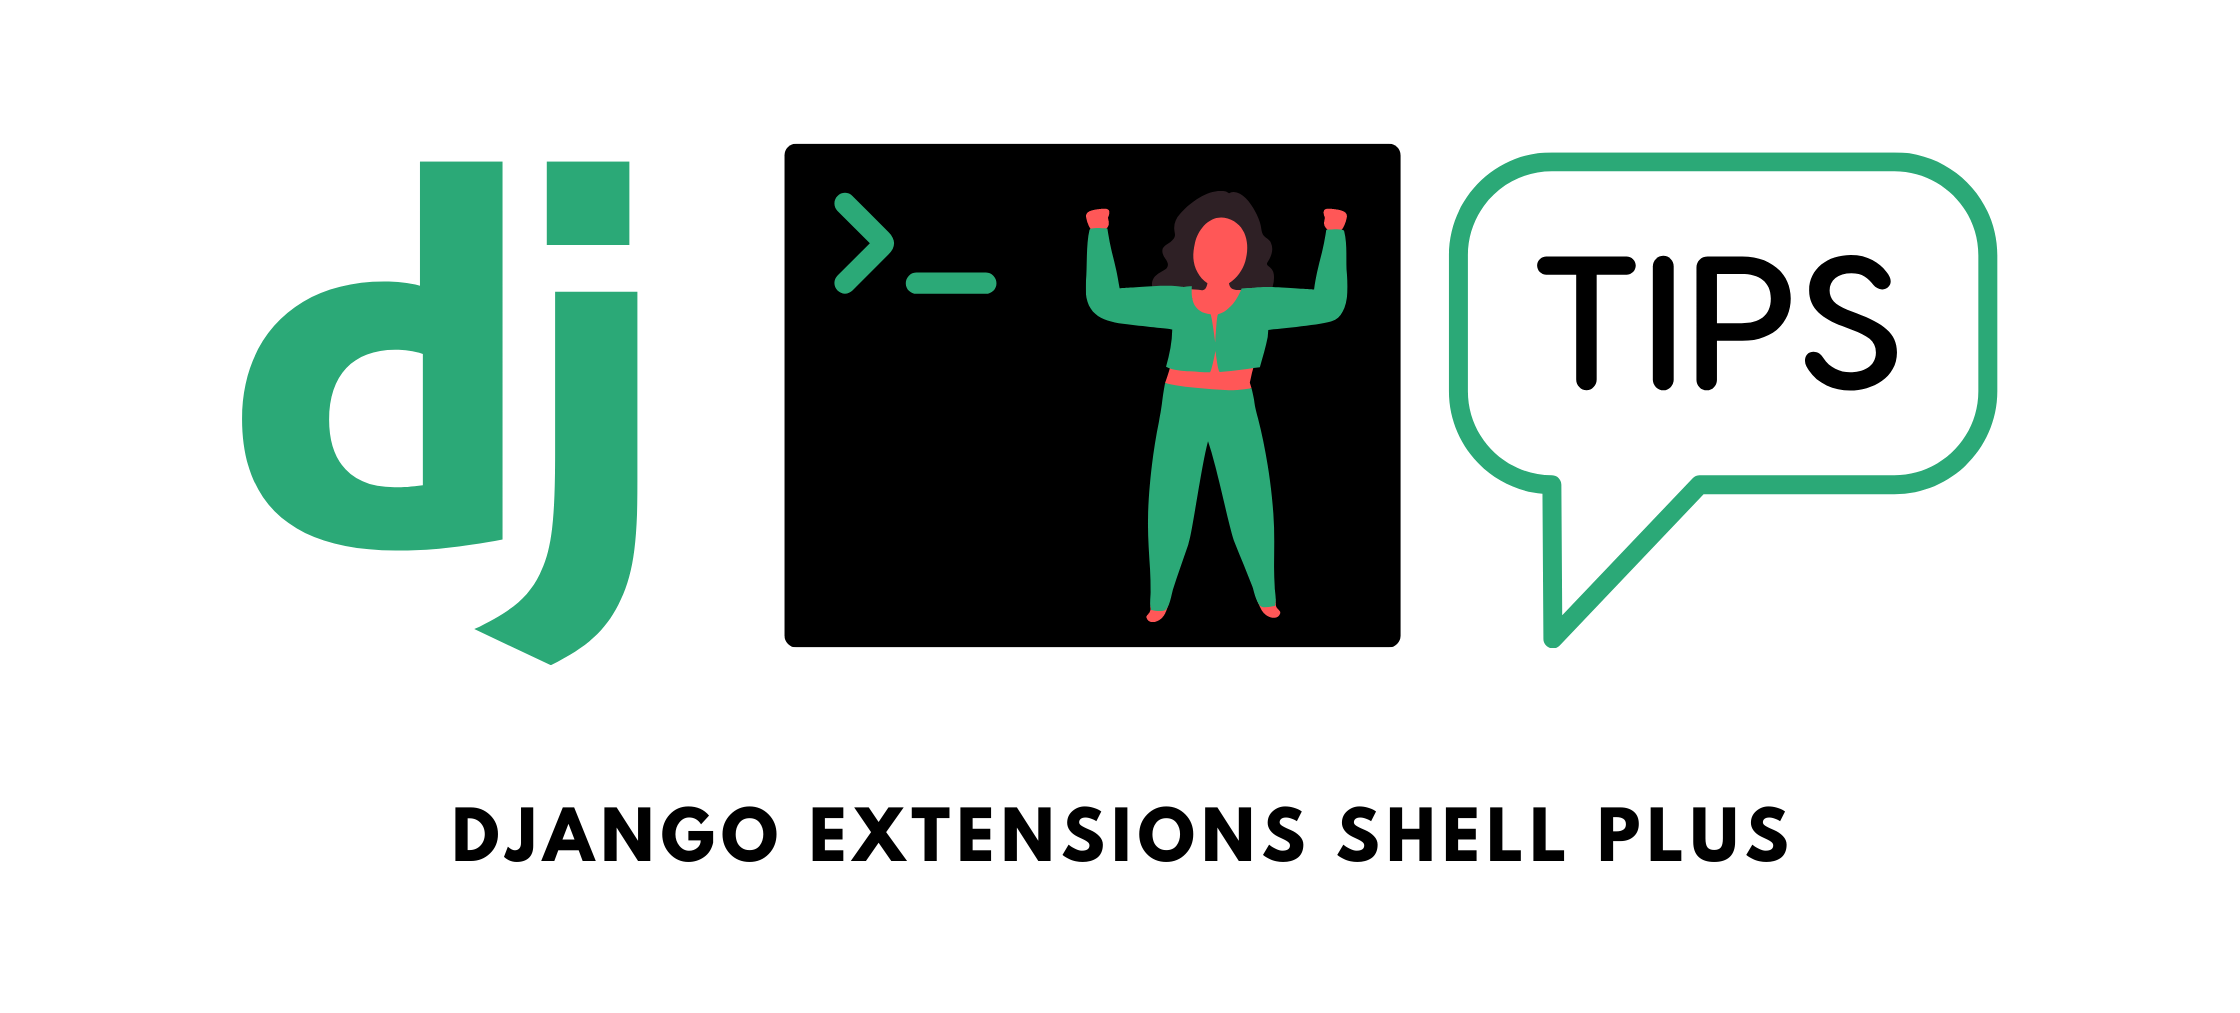 django extension shell plus header